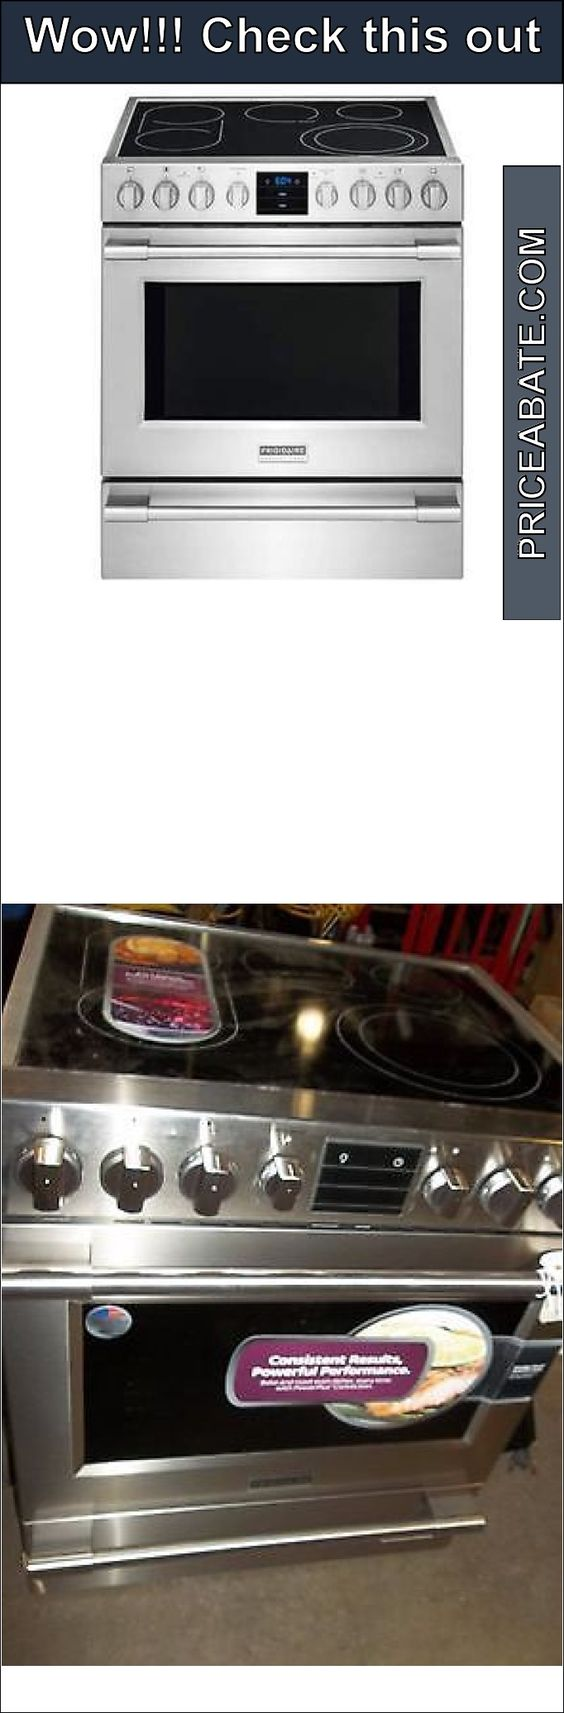 Professional Electric Ranges For The Home Appliances Frigidaire Professional Series Stainless Steel Slide